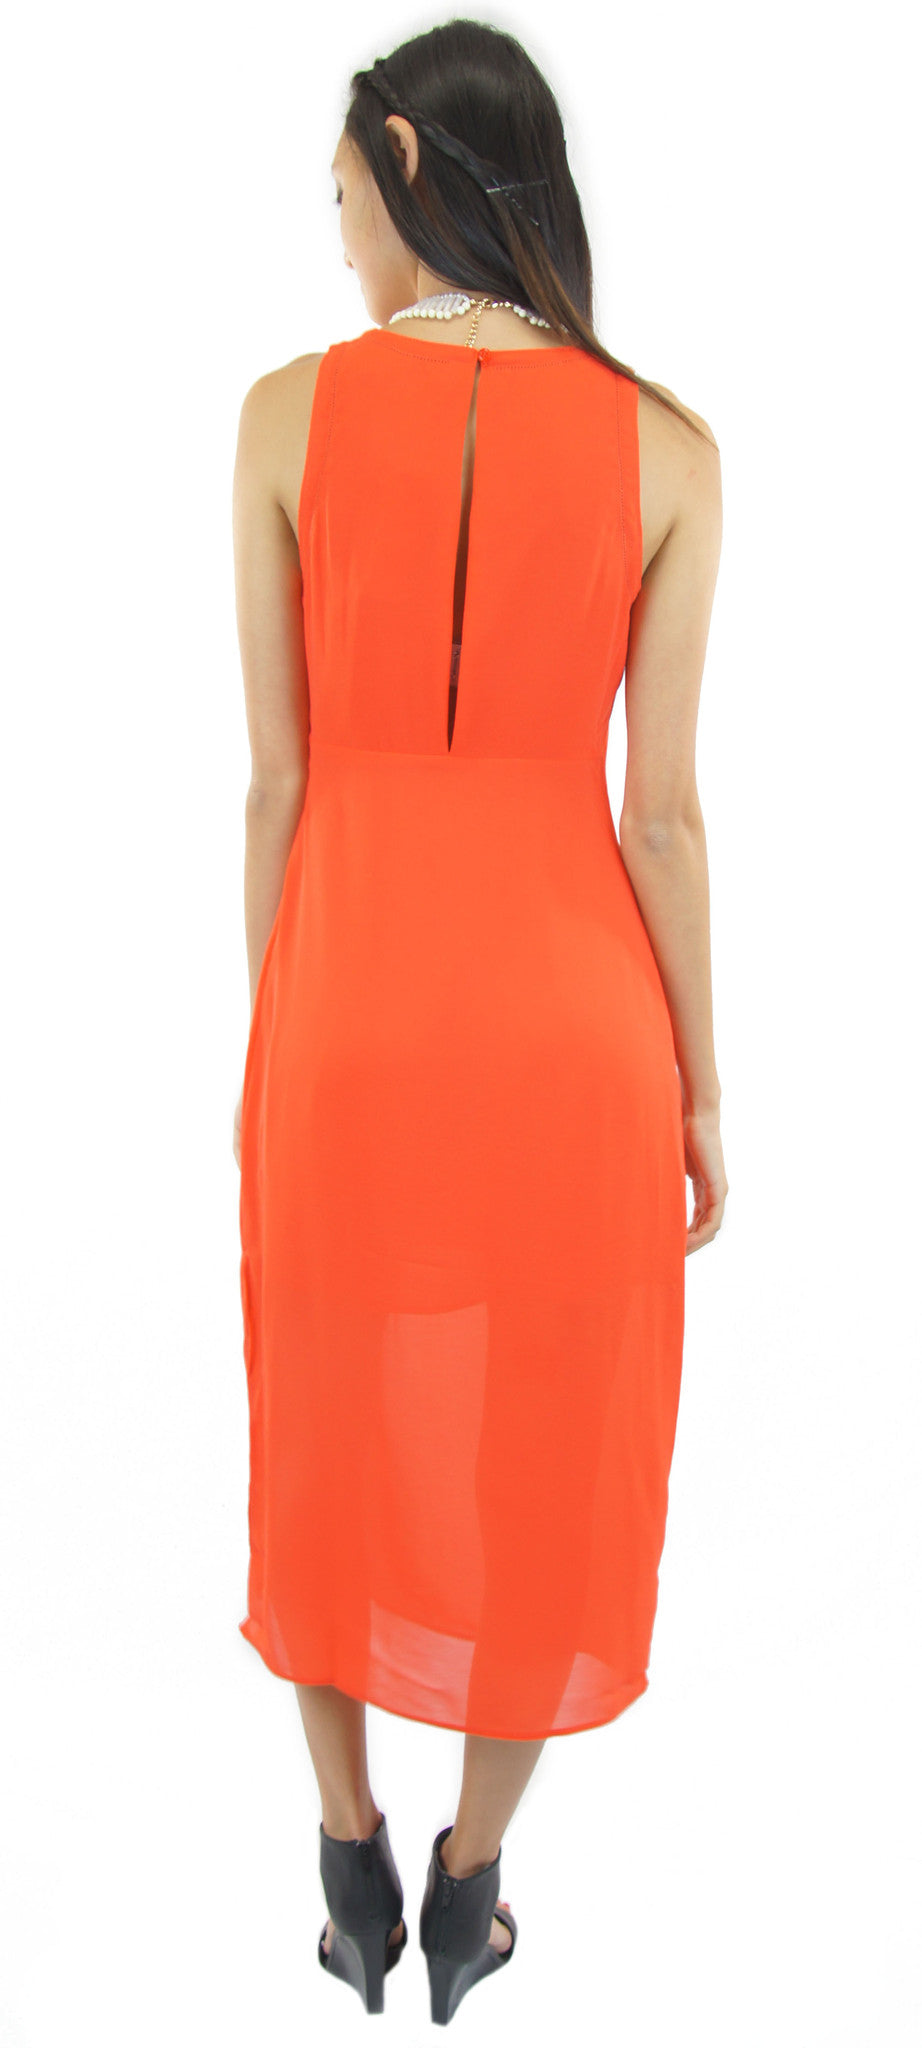 off beat midi dress - klōthe - 2